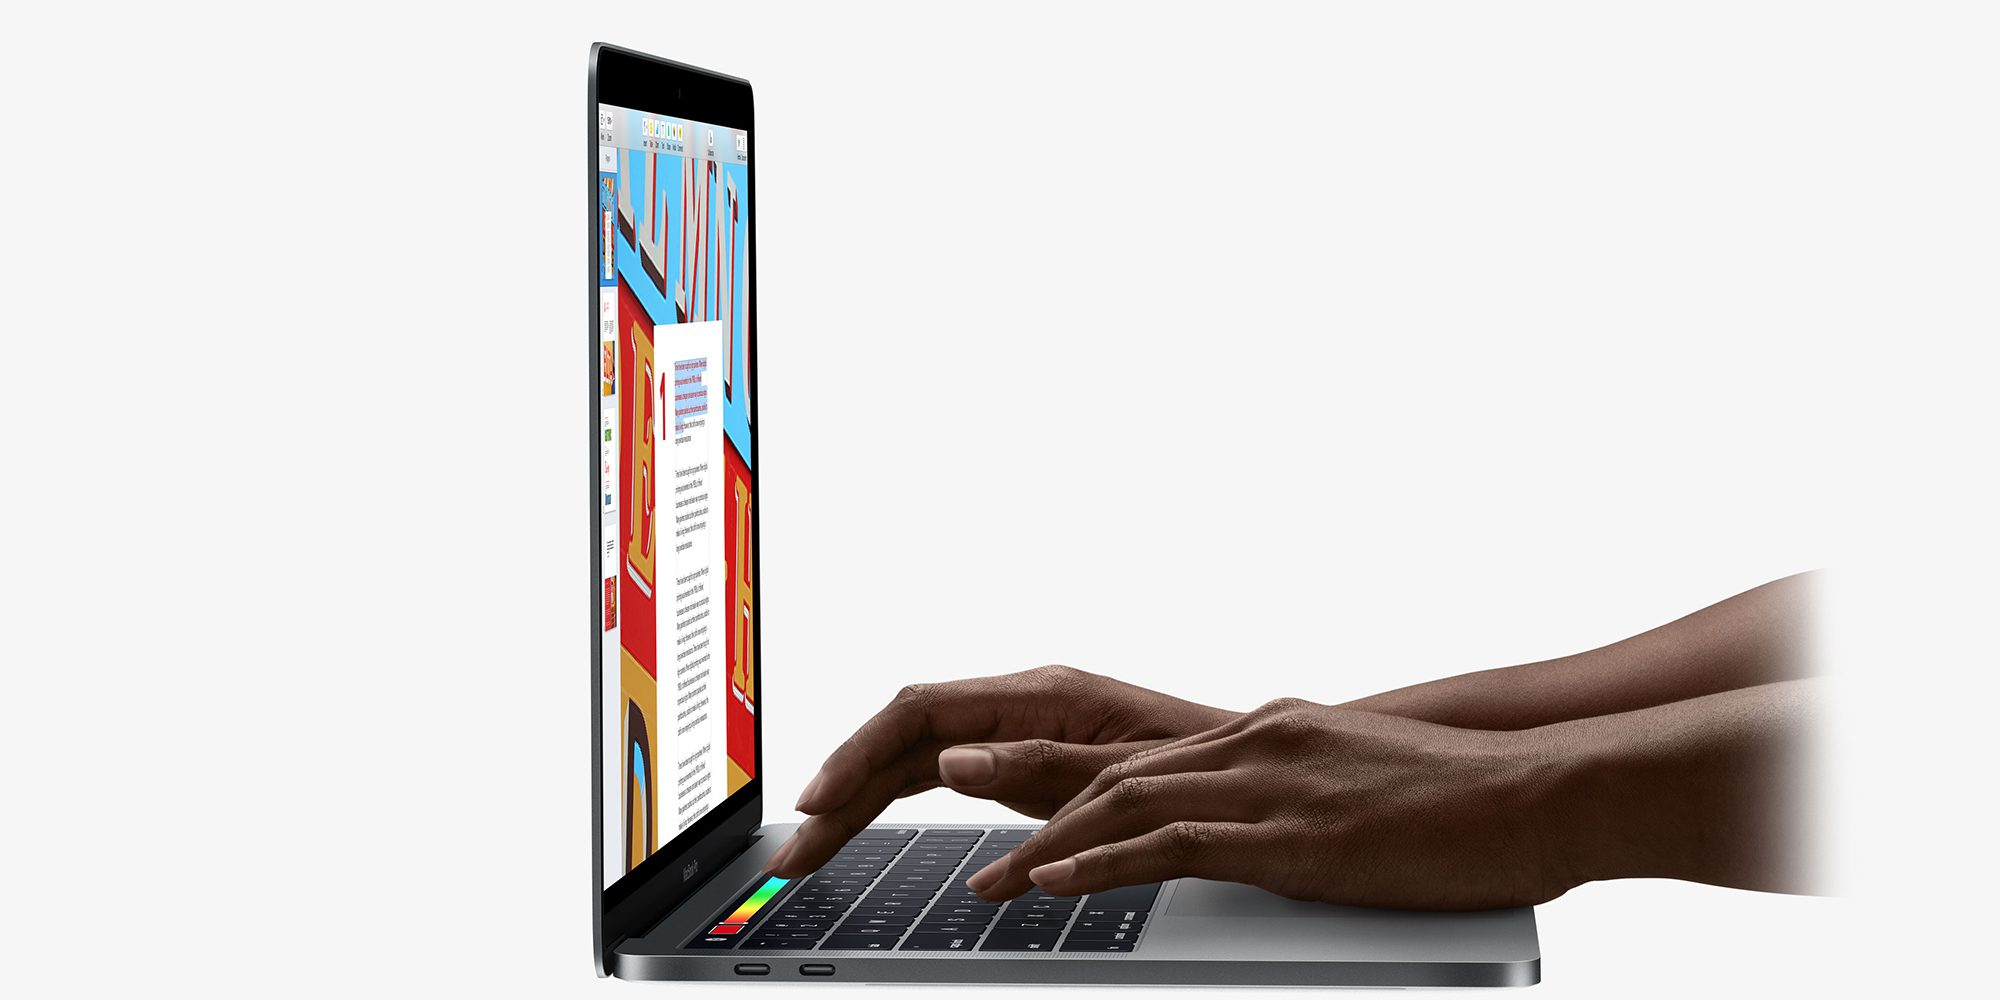 13-inch-macbook-pro-touchbar